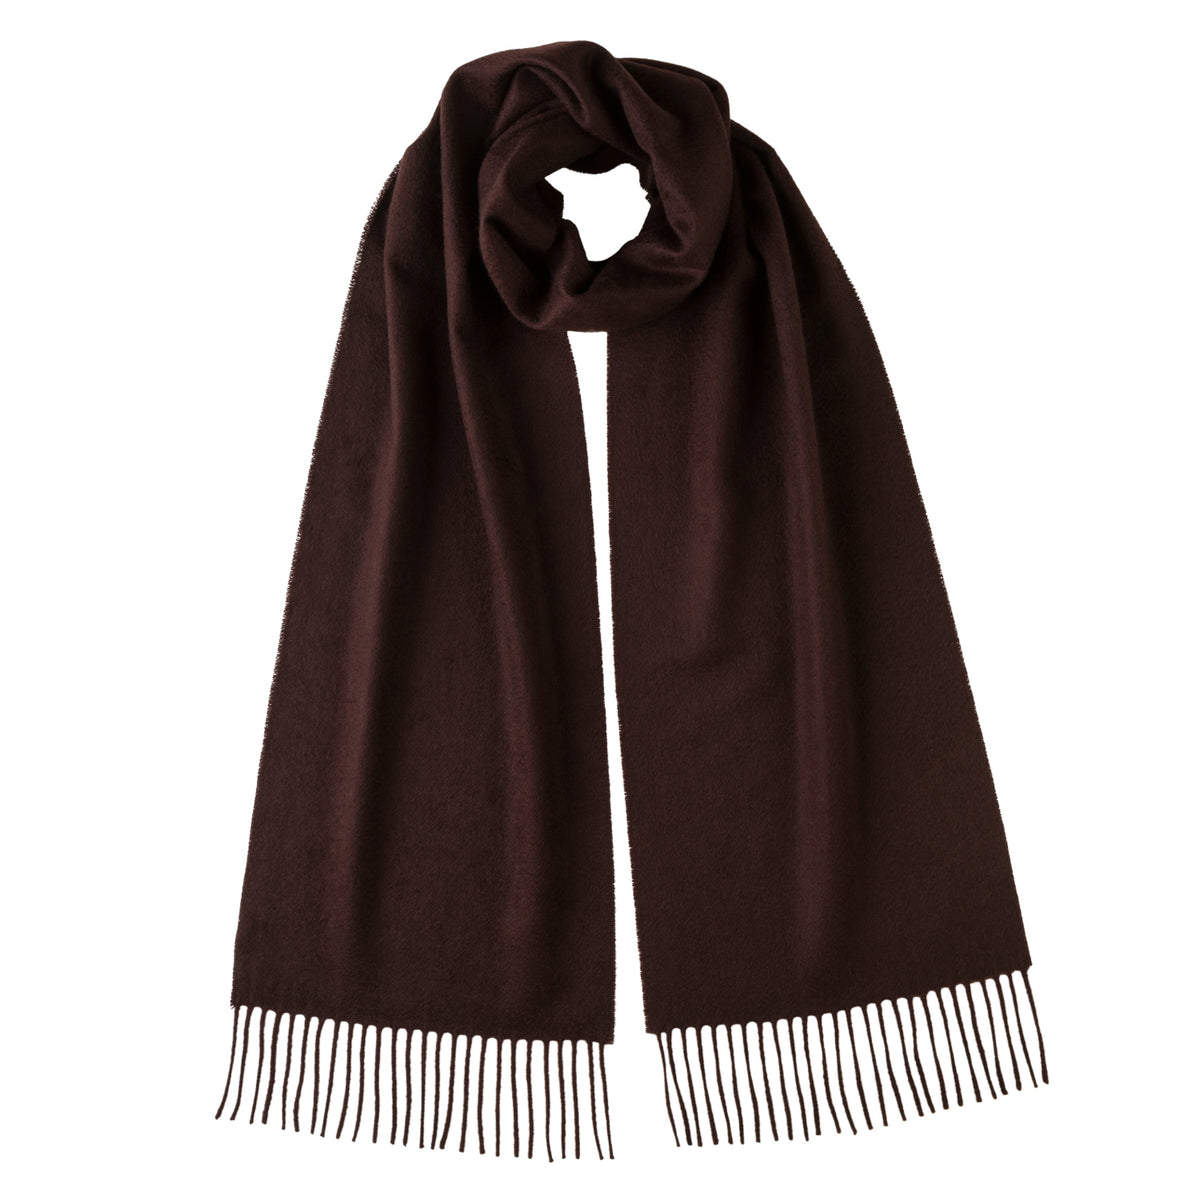 Johnsons of Elgin | Johnston Cashmere | Chocolate Brown Cashmere Scarf | buy at The Cashmere Choice | London